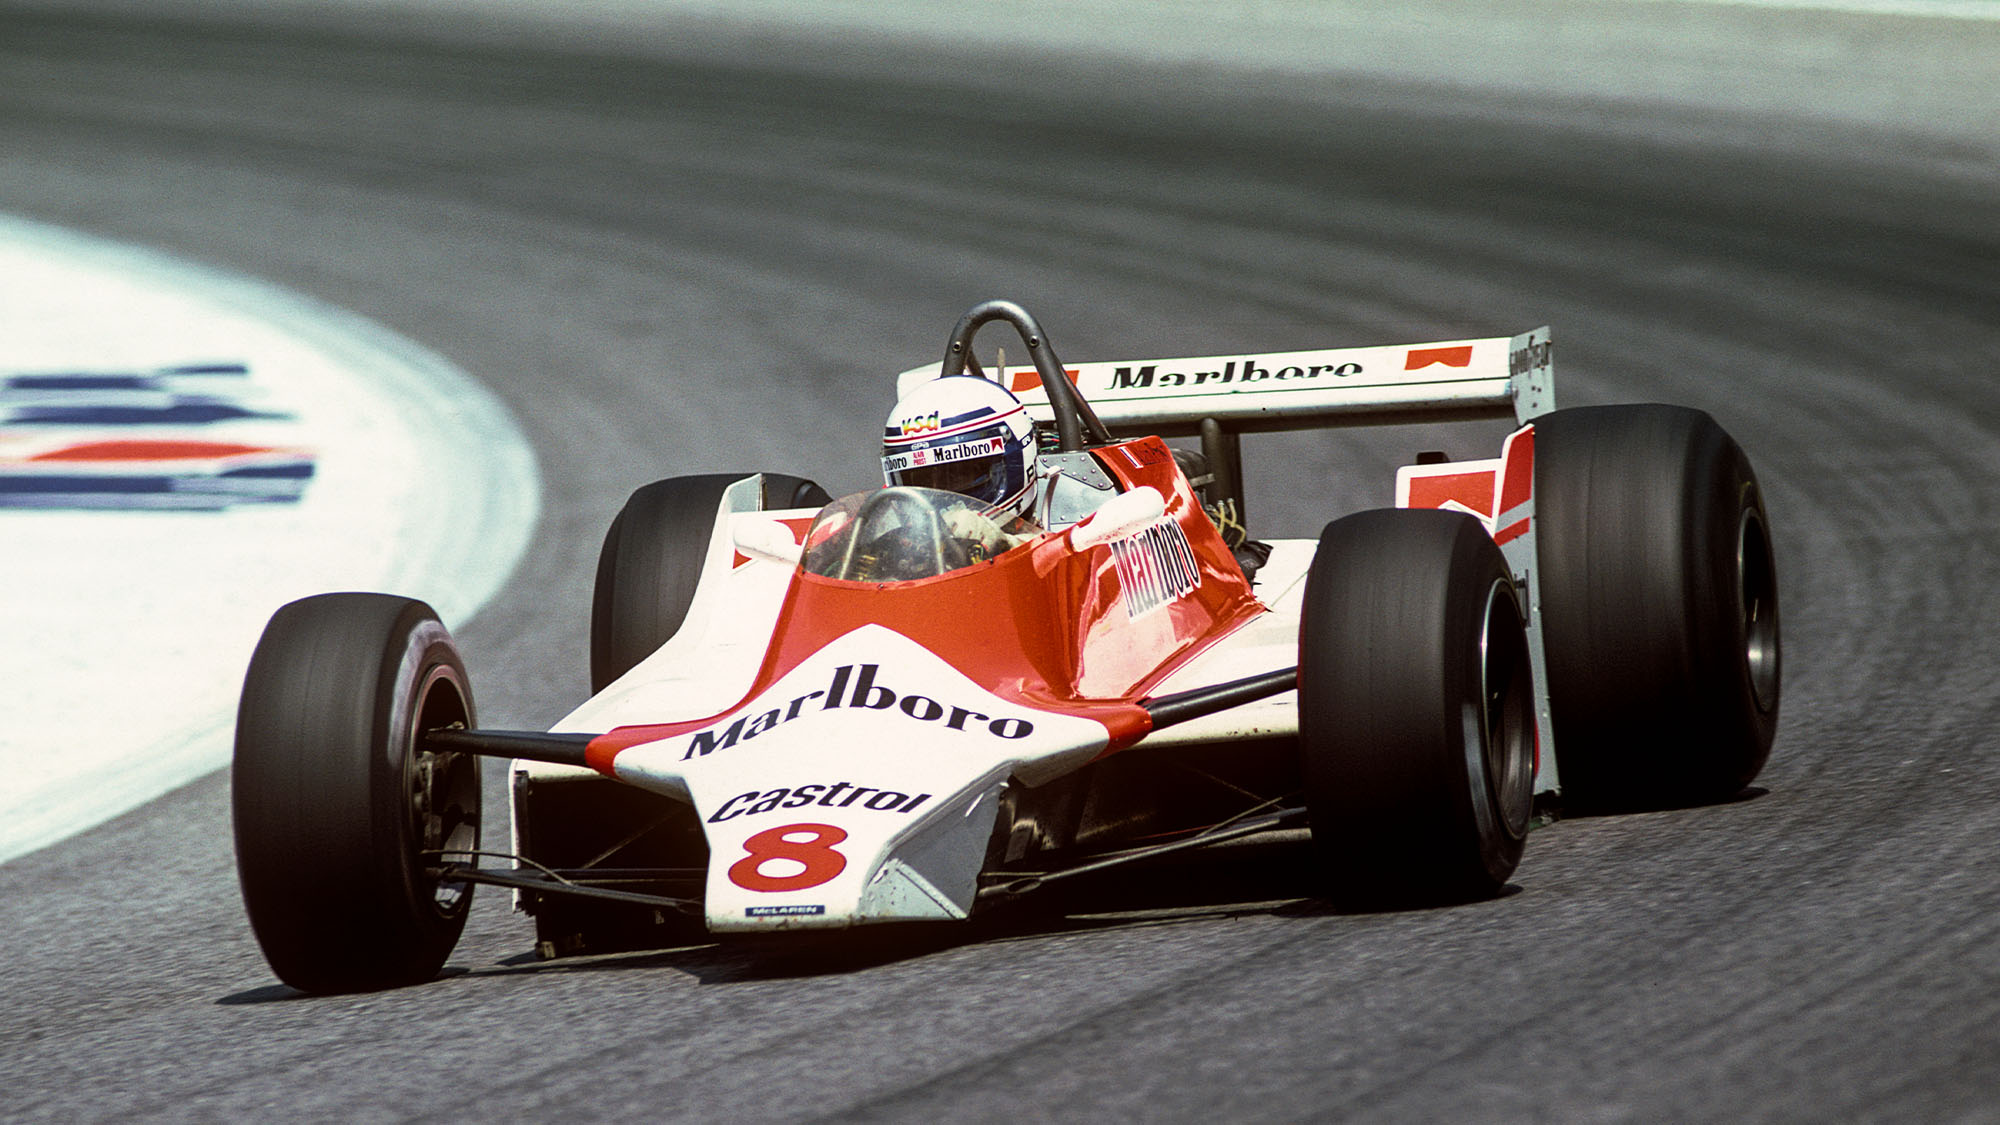 Alain Prost, McLaren-Ford M29C, Grand Prix of Austria, Osterreichring, 17 August 1980. (Photo by Bernard Cahier/Getty Images)